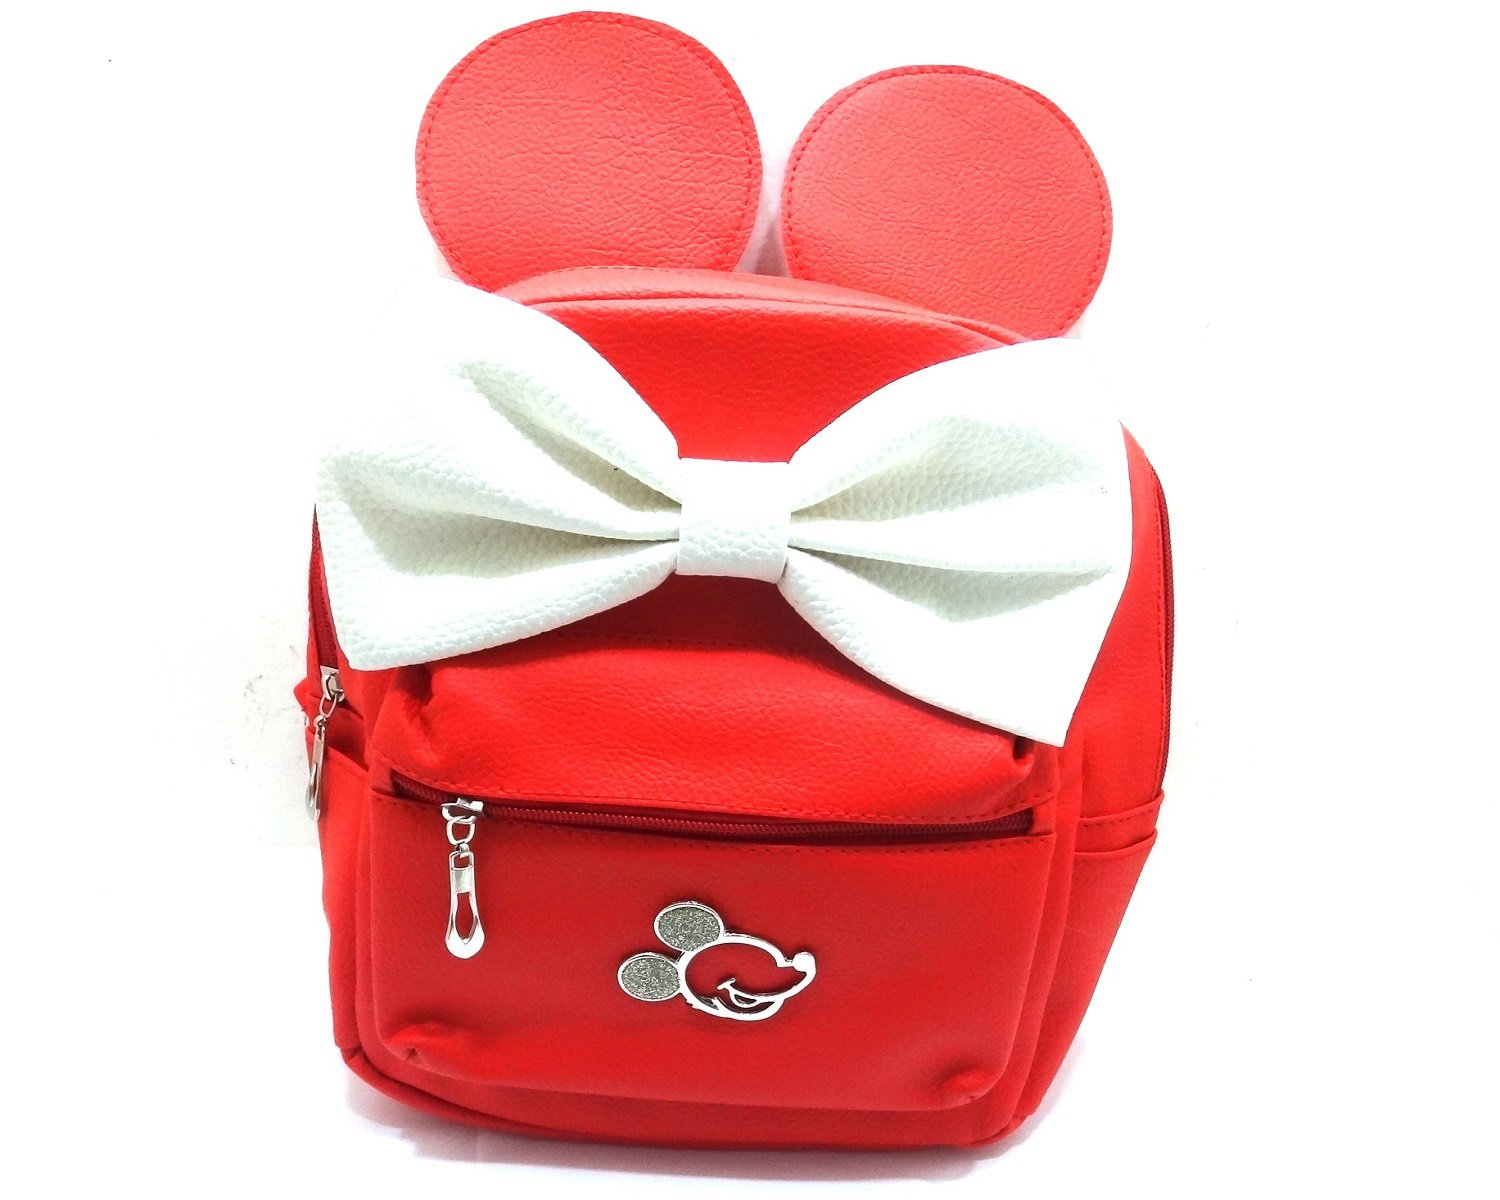 GSC Moda Mini Backpack Red Bag Lady Girls Teens Mouse